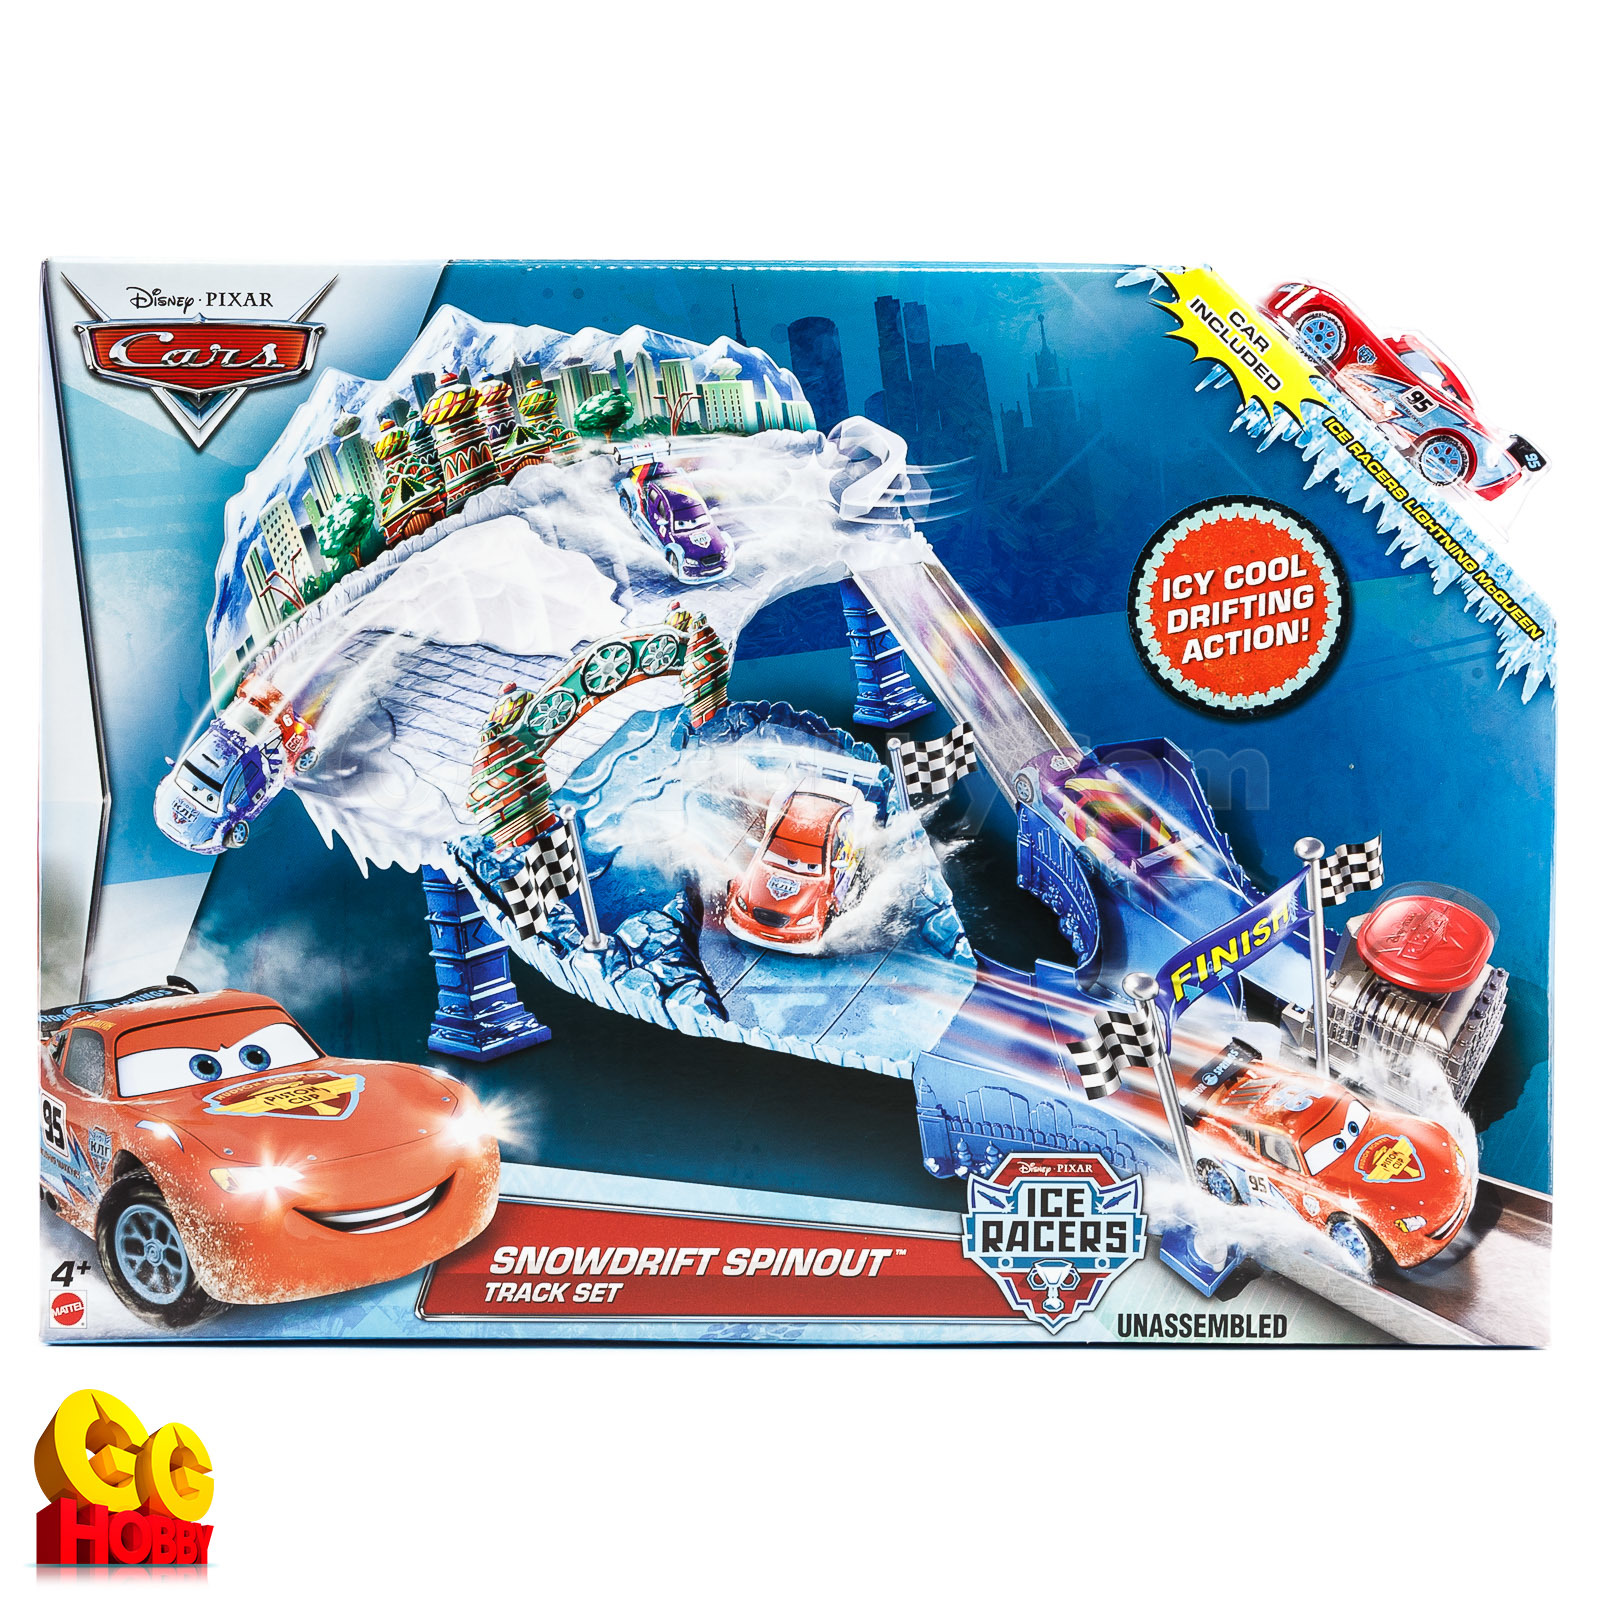 Disney Cars Ice Racers Snowdrift Spinout Track Set PlaySet